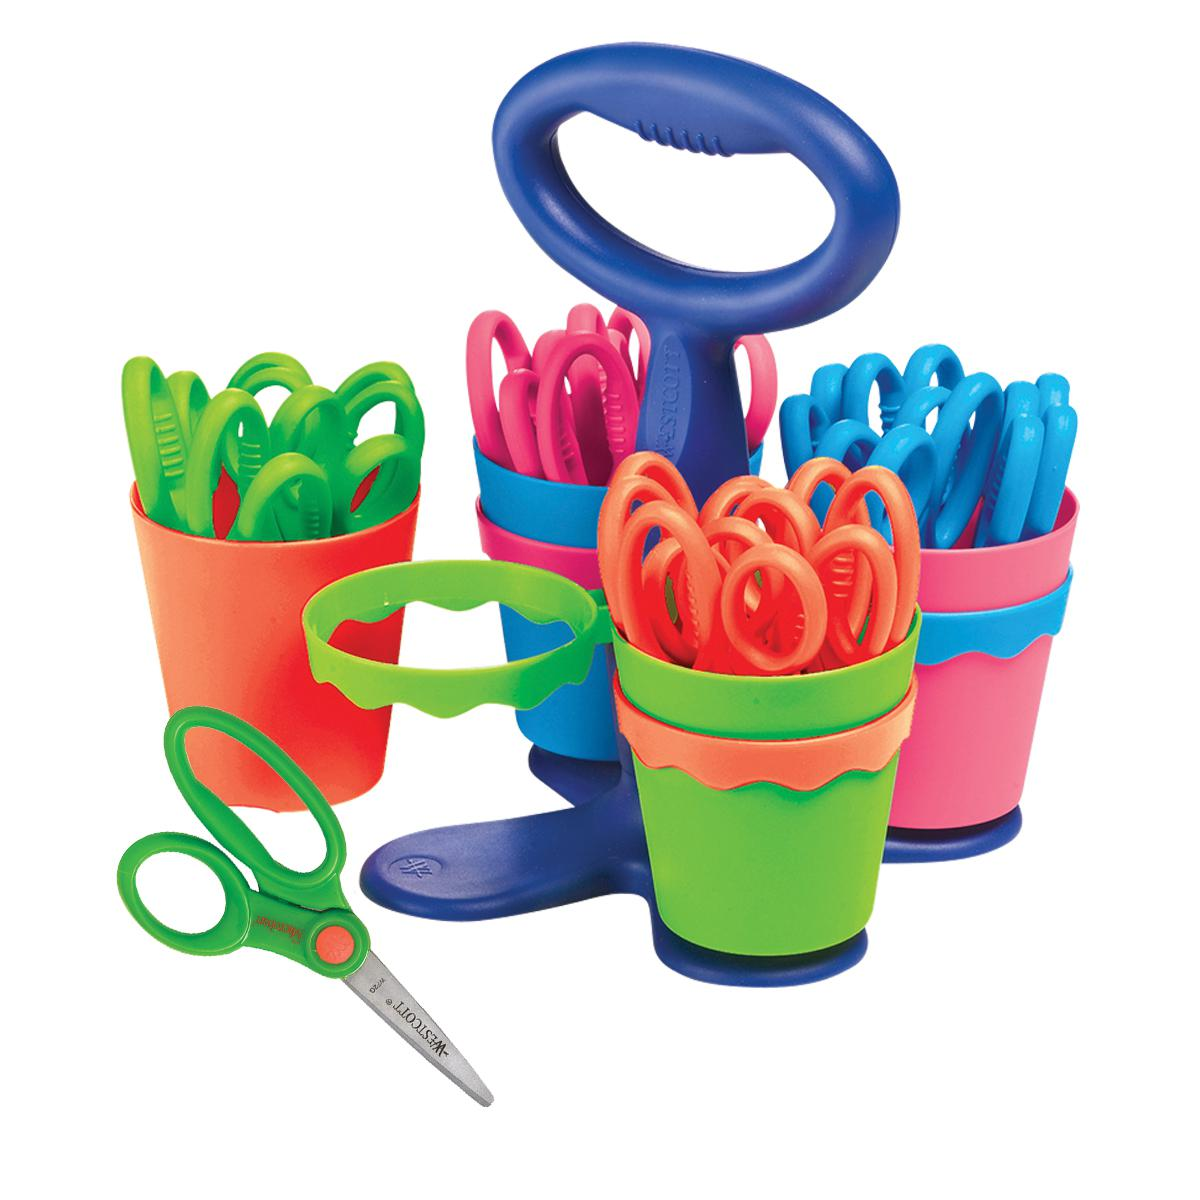 Pointed Classroom Scissor Caddy